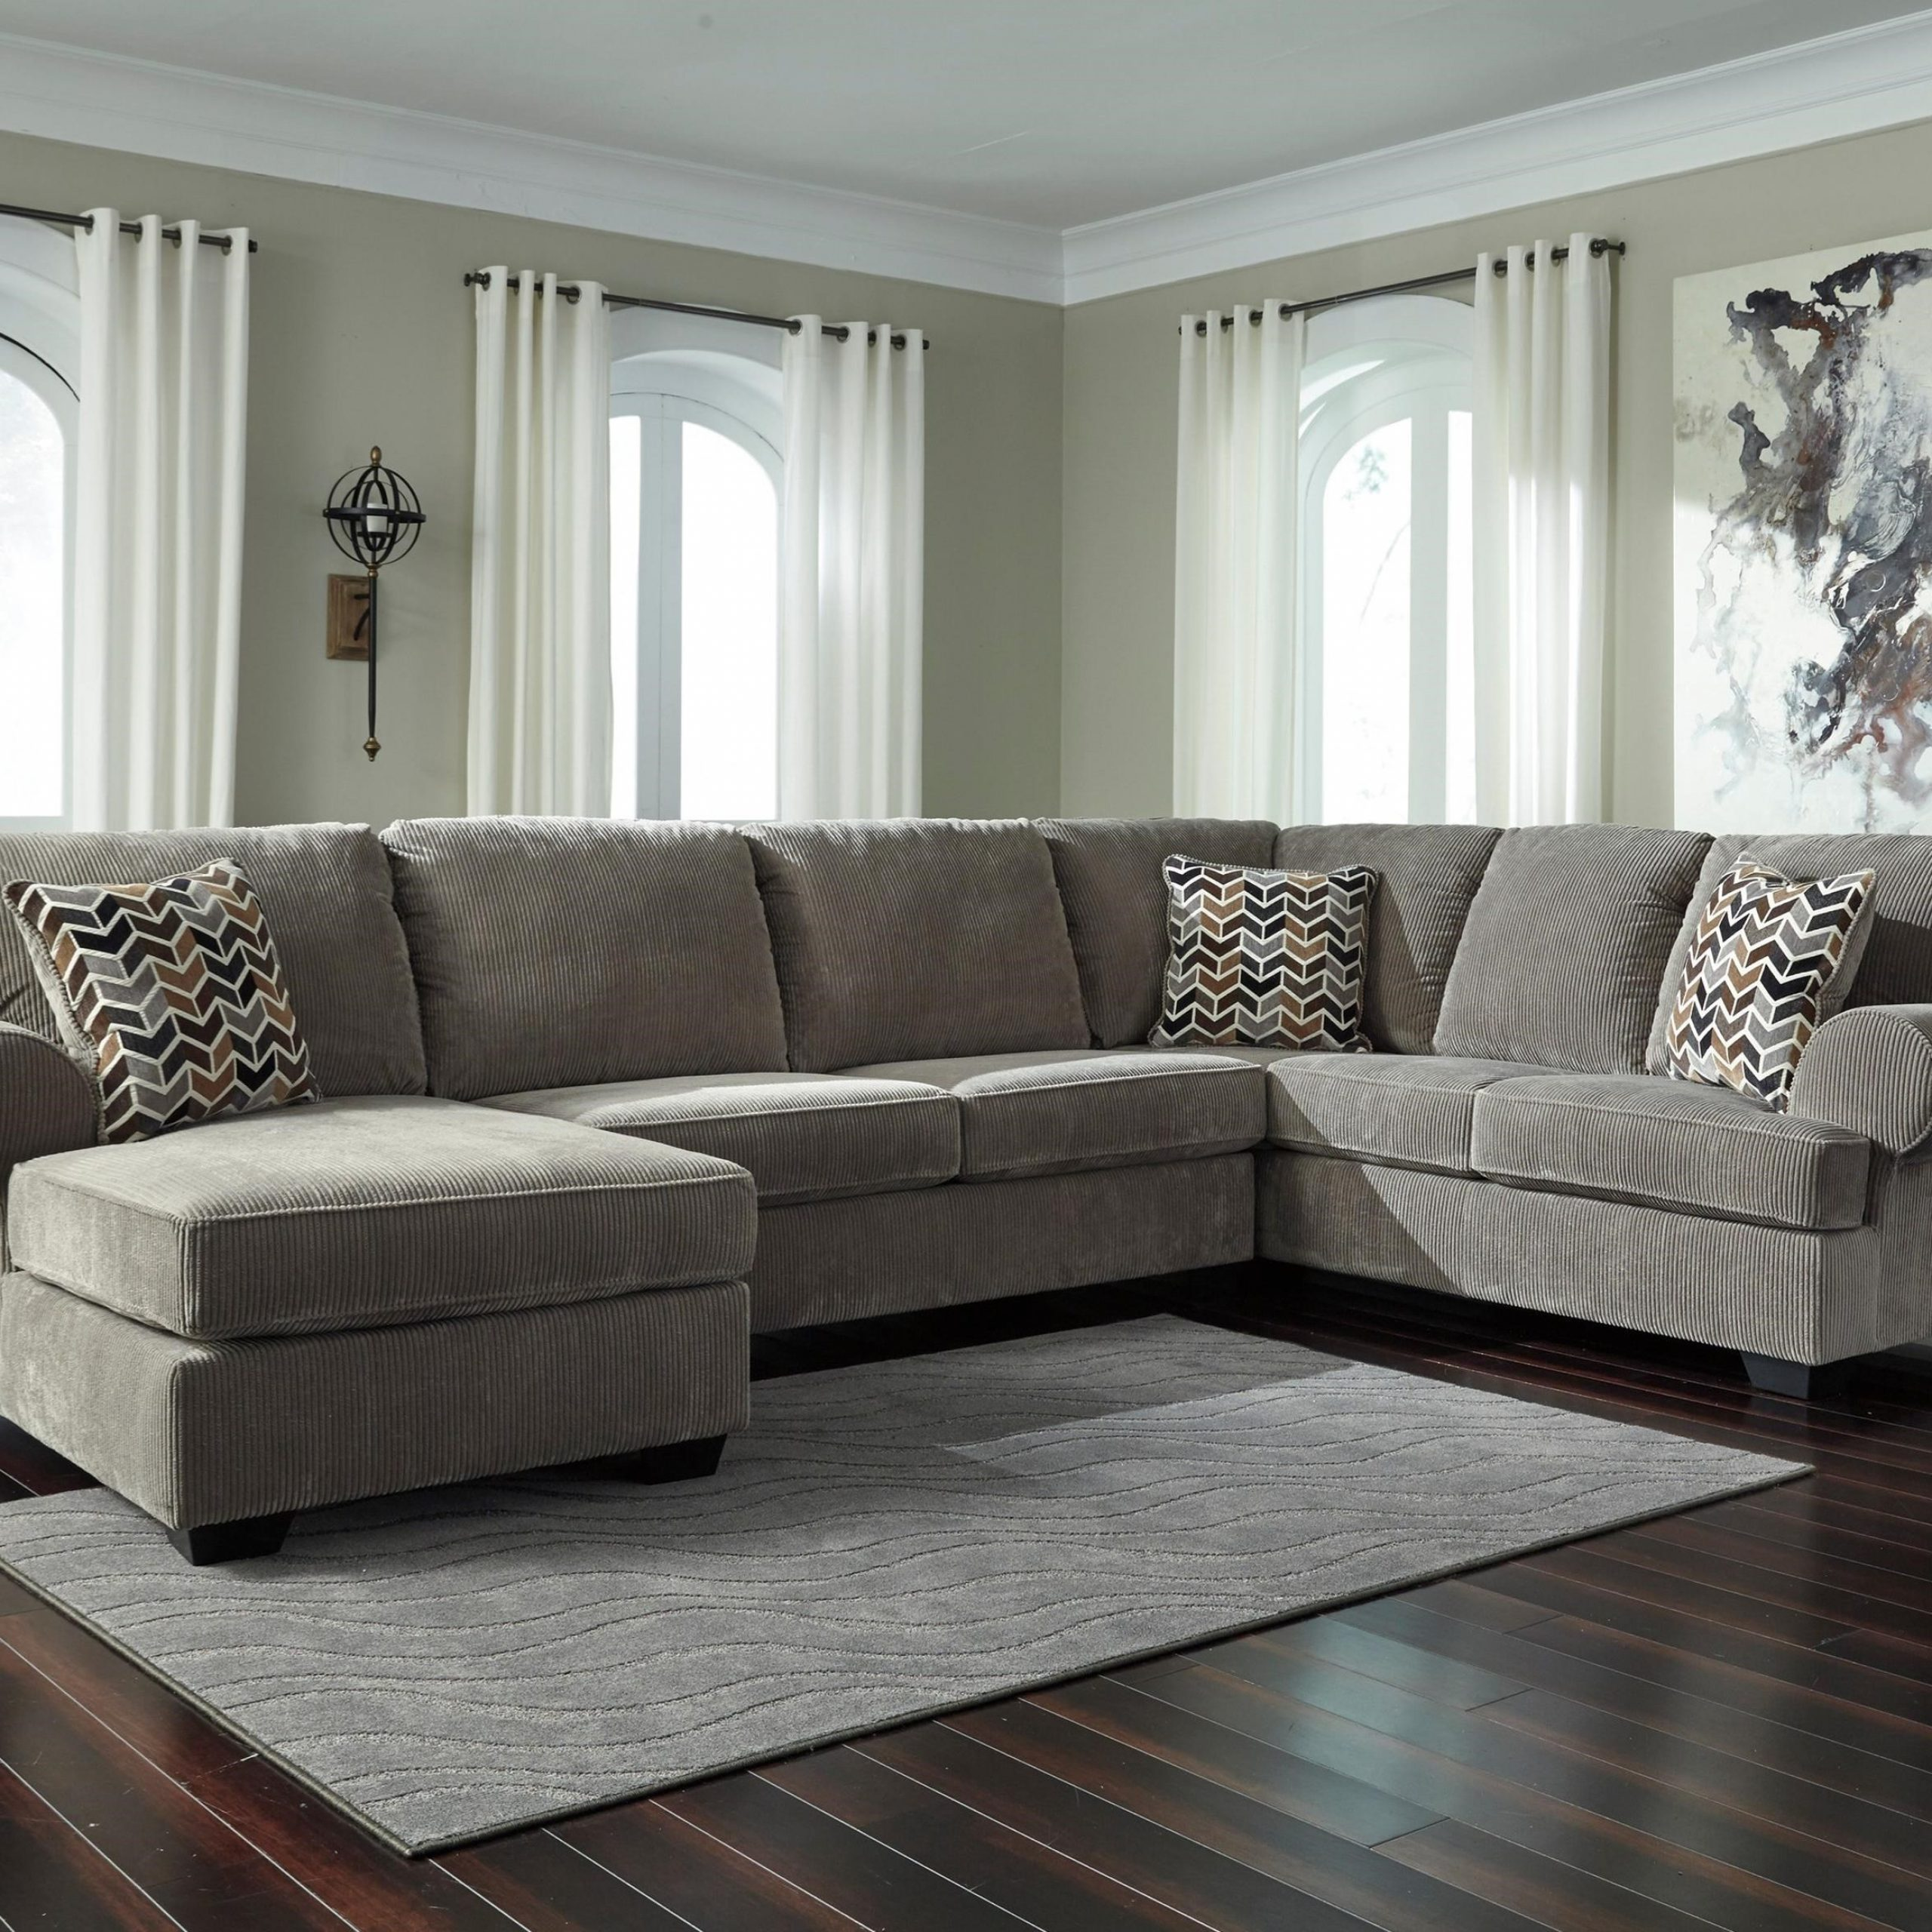 Widely Used 3Pc Miles Leather Sectional Sofas With Chaise Within Ashley Signature Design Jinllingsly Contemporary 3 Piece (View 16 of 25)